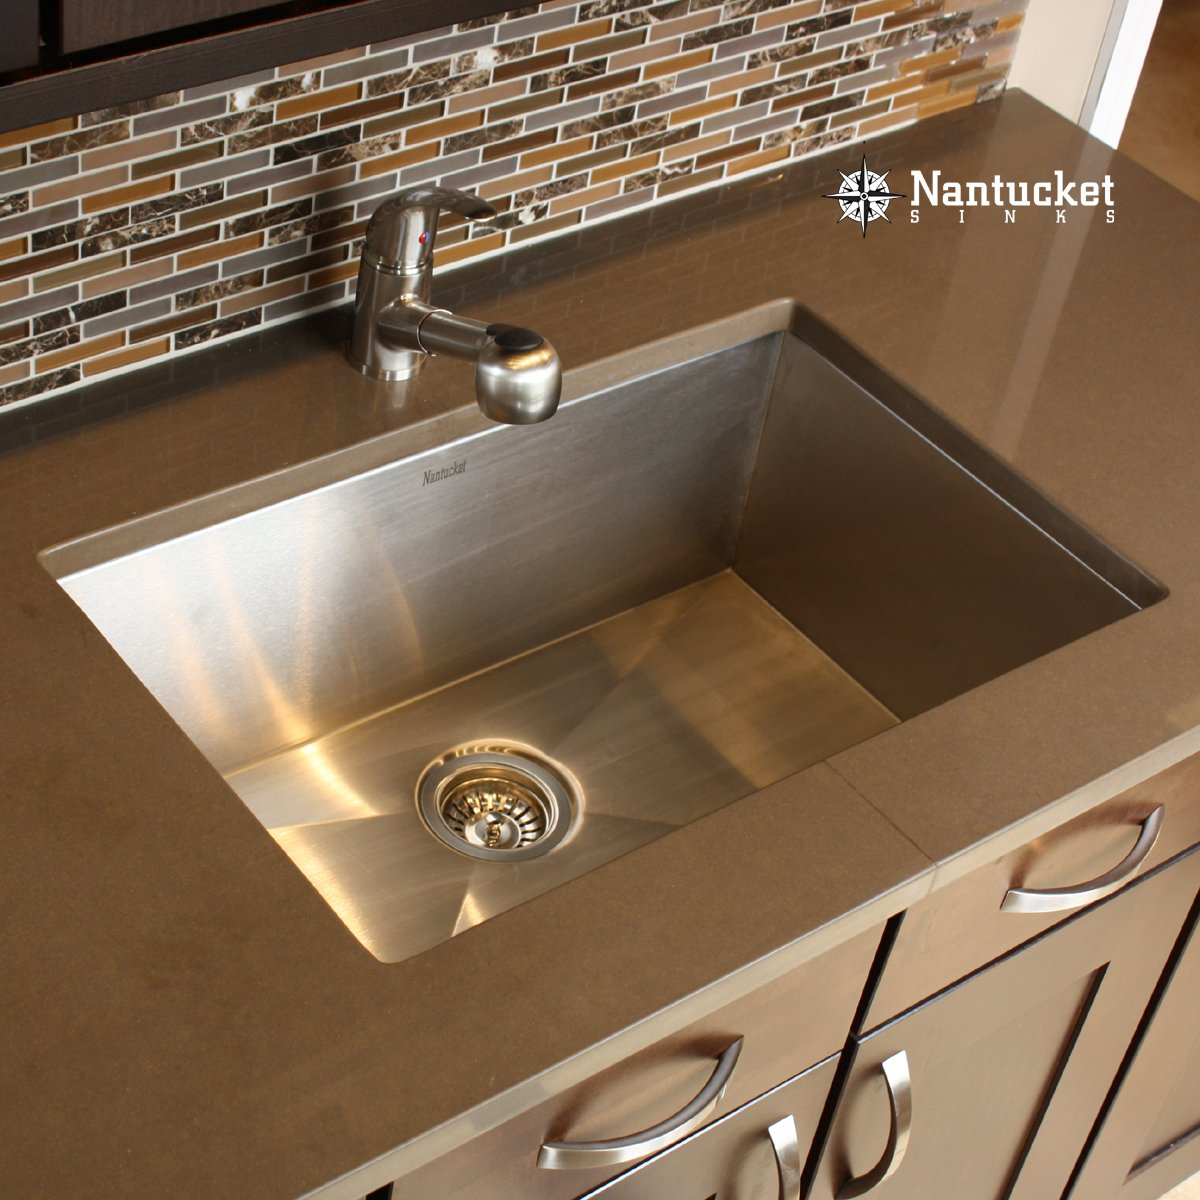 Superior Nantucket Sinks ZR2818 16 28 Inch Pro Series Single Bowl Undermount Kitchen  Sink, Stainless Steel     Amazon.com